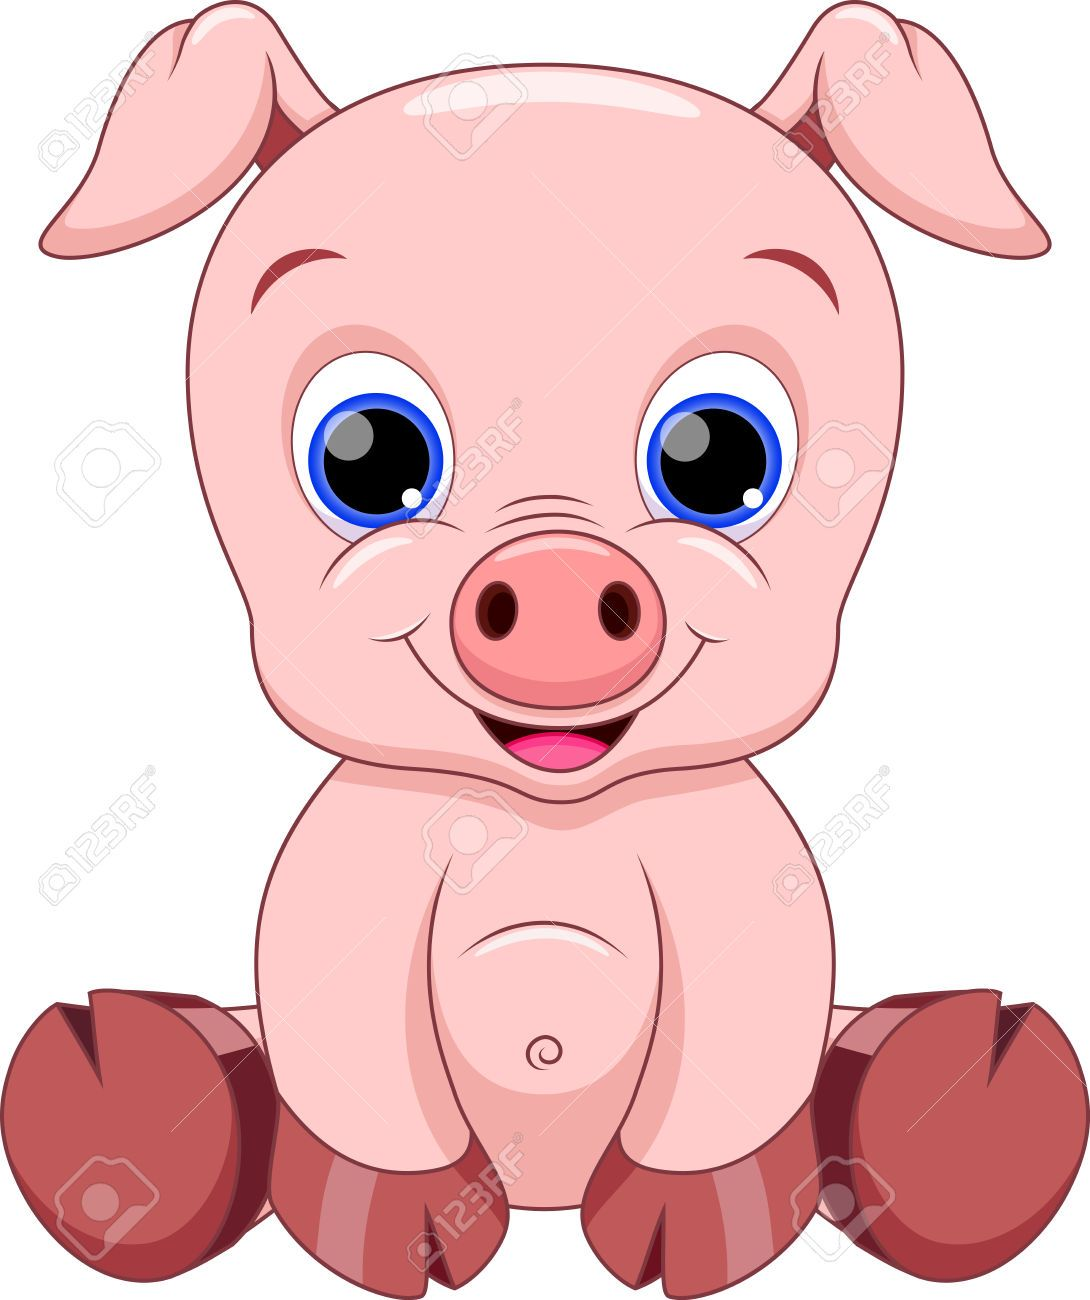 Cute Baby Pig Cartoon Royalty Free Cliparts, Vectors, And Stock ...